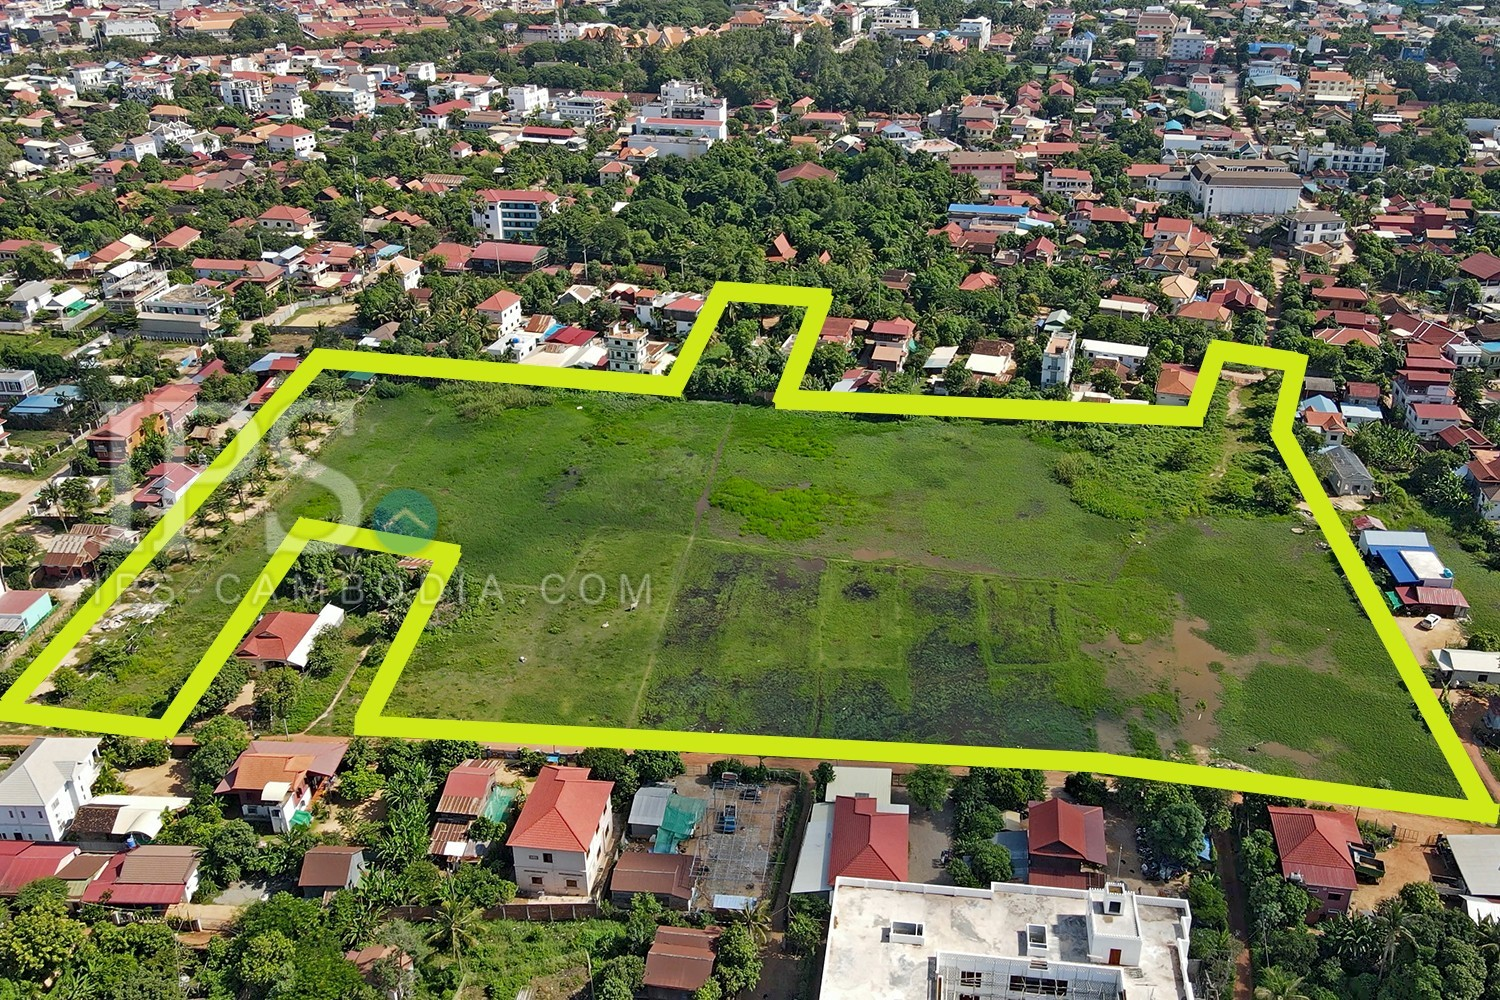 32,118 sq.m. Commercial Land For Sale - Wat Damnak, Siem Reap